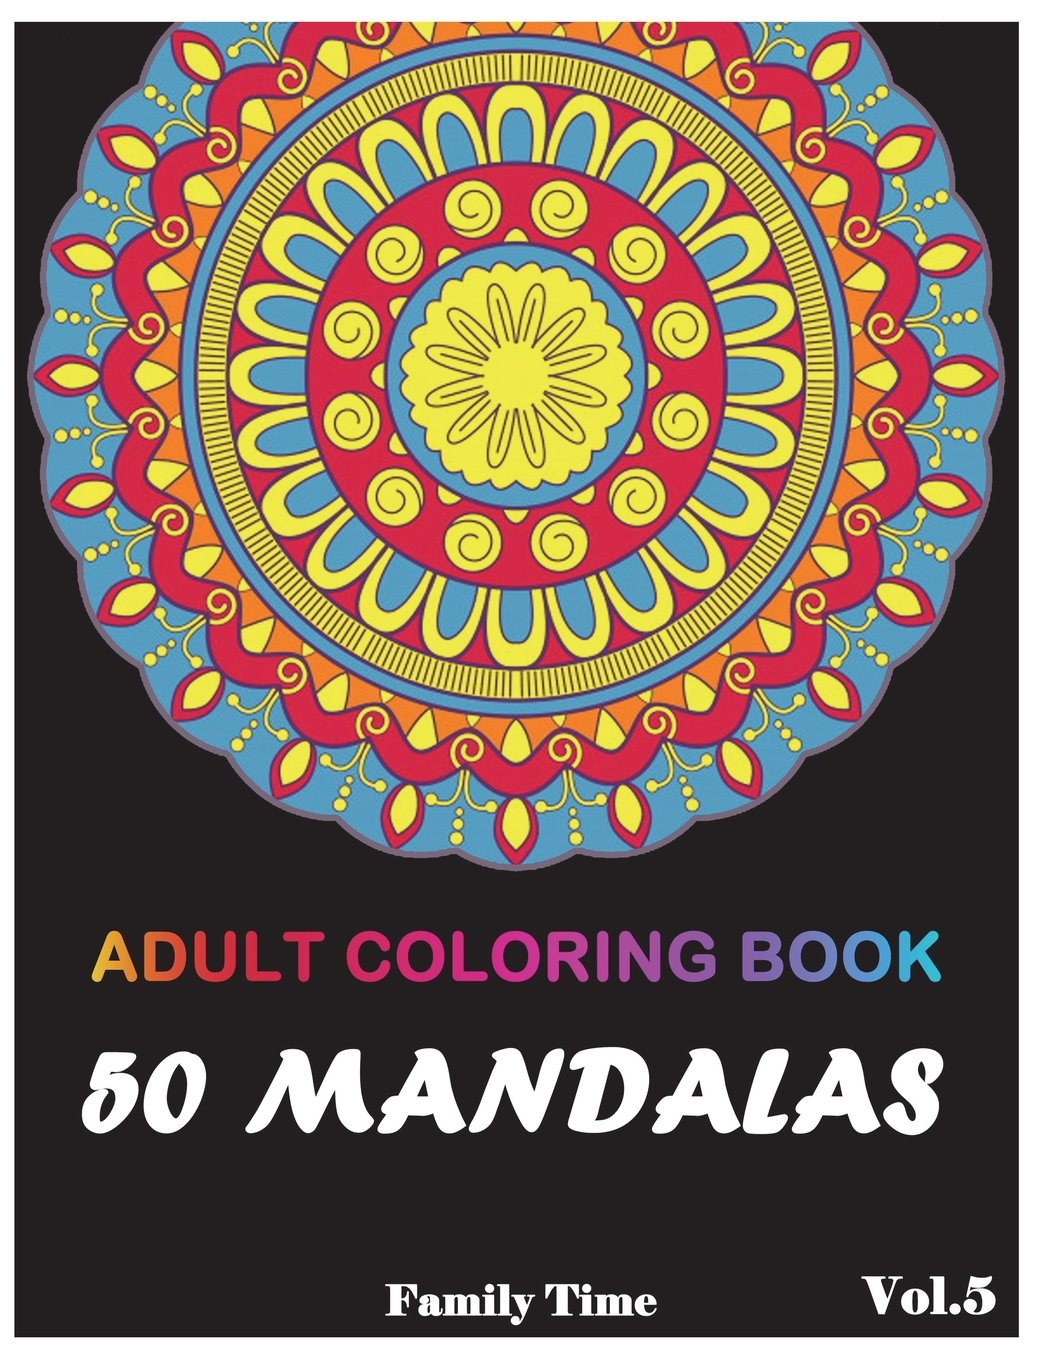 Download Mandala Adult Coloring Book: 50+ Mandala Images Stress Relieving Patterns Coloring Book For Relaxation, Meditation, Happiness and Relief & Art Color Therapy(Volume 5) (50 Mandala Adult Coloring Book) PDF